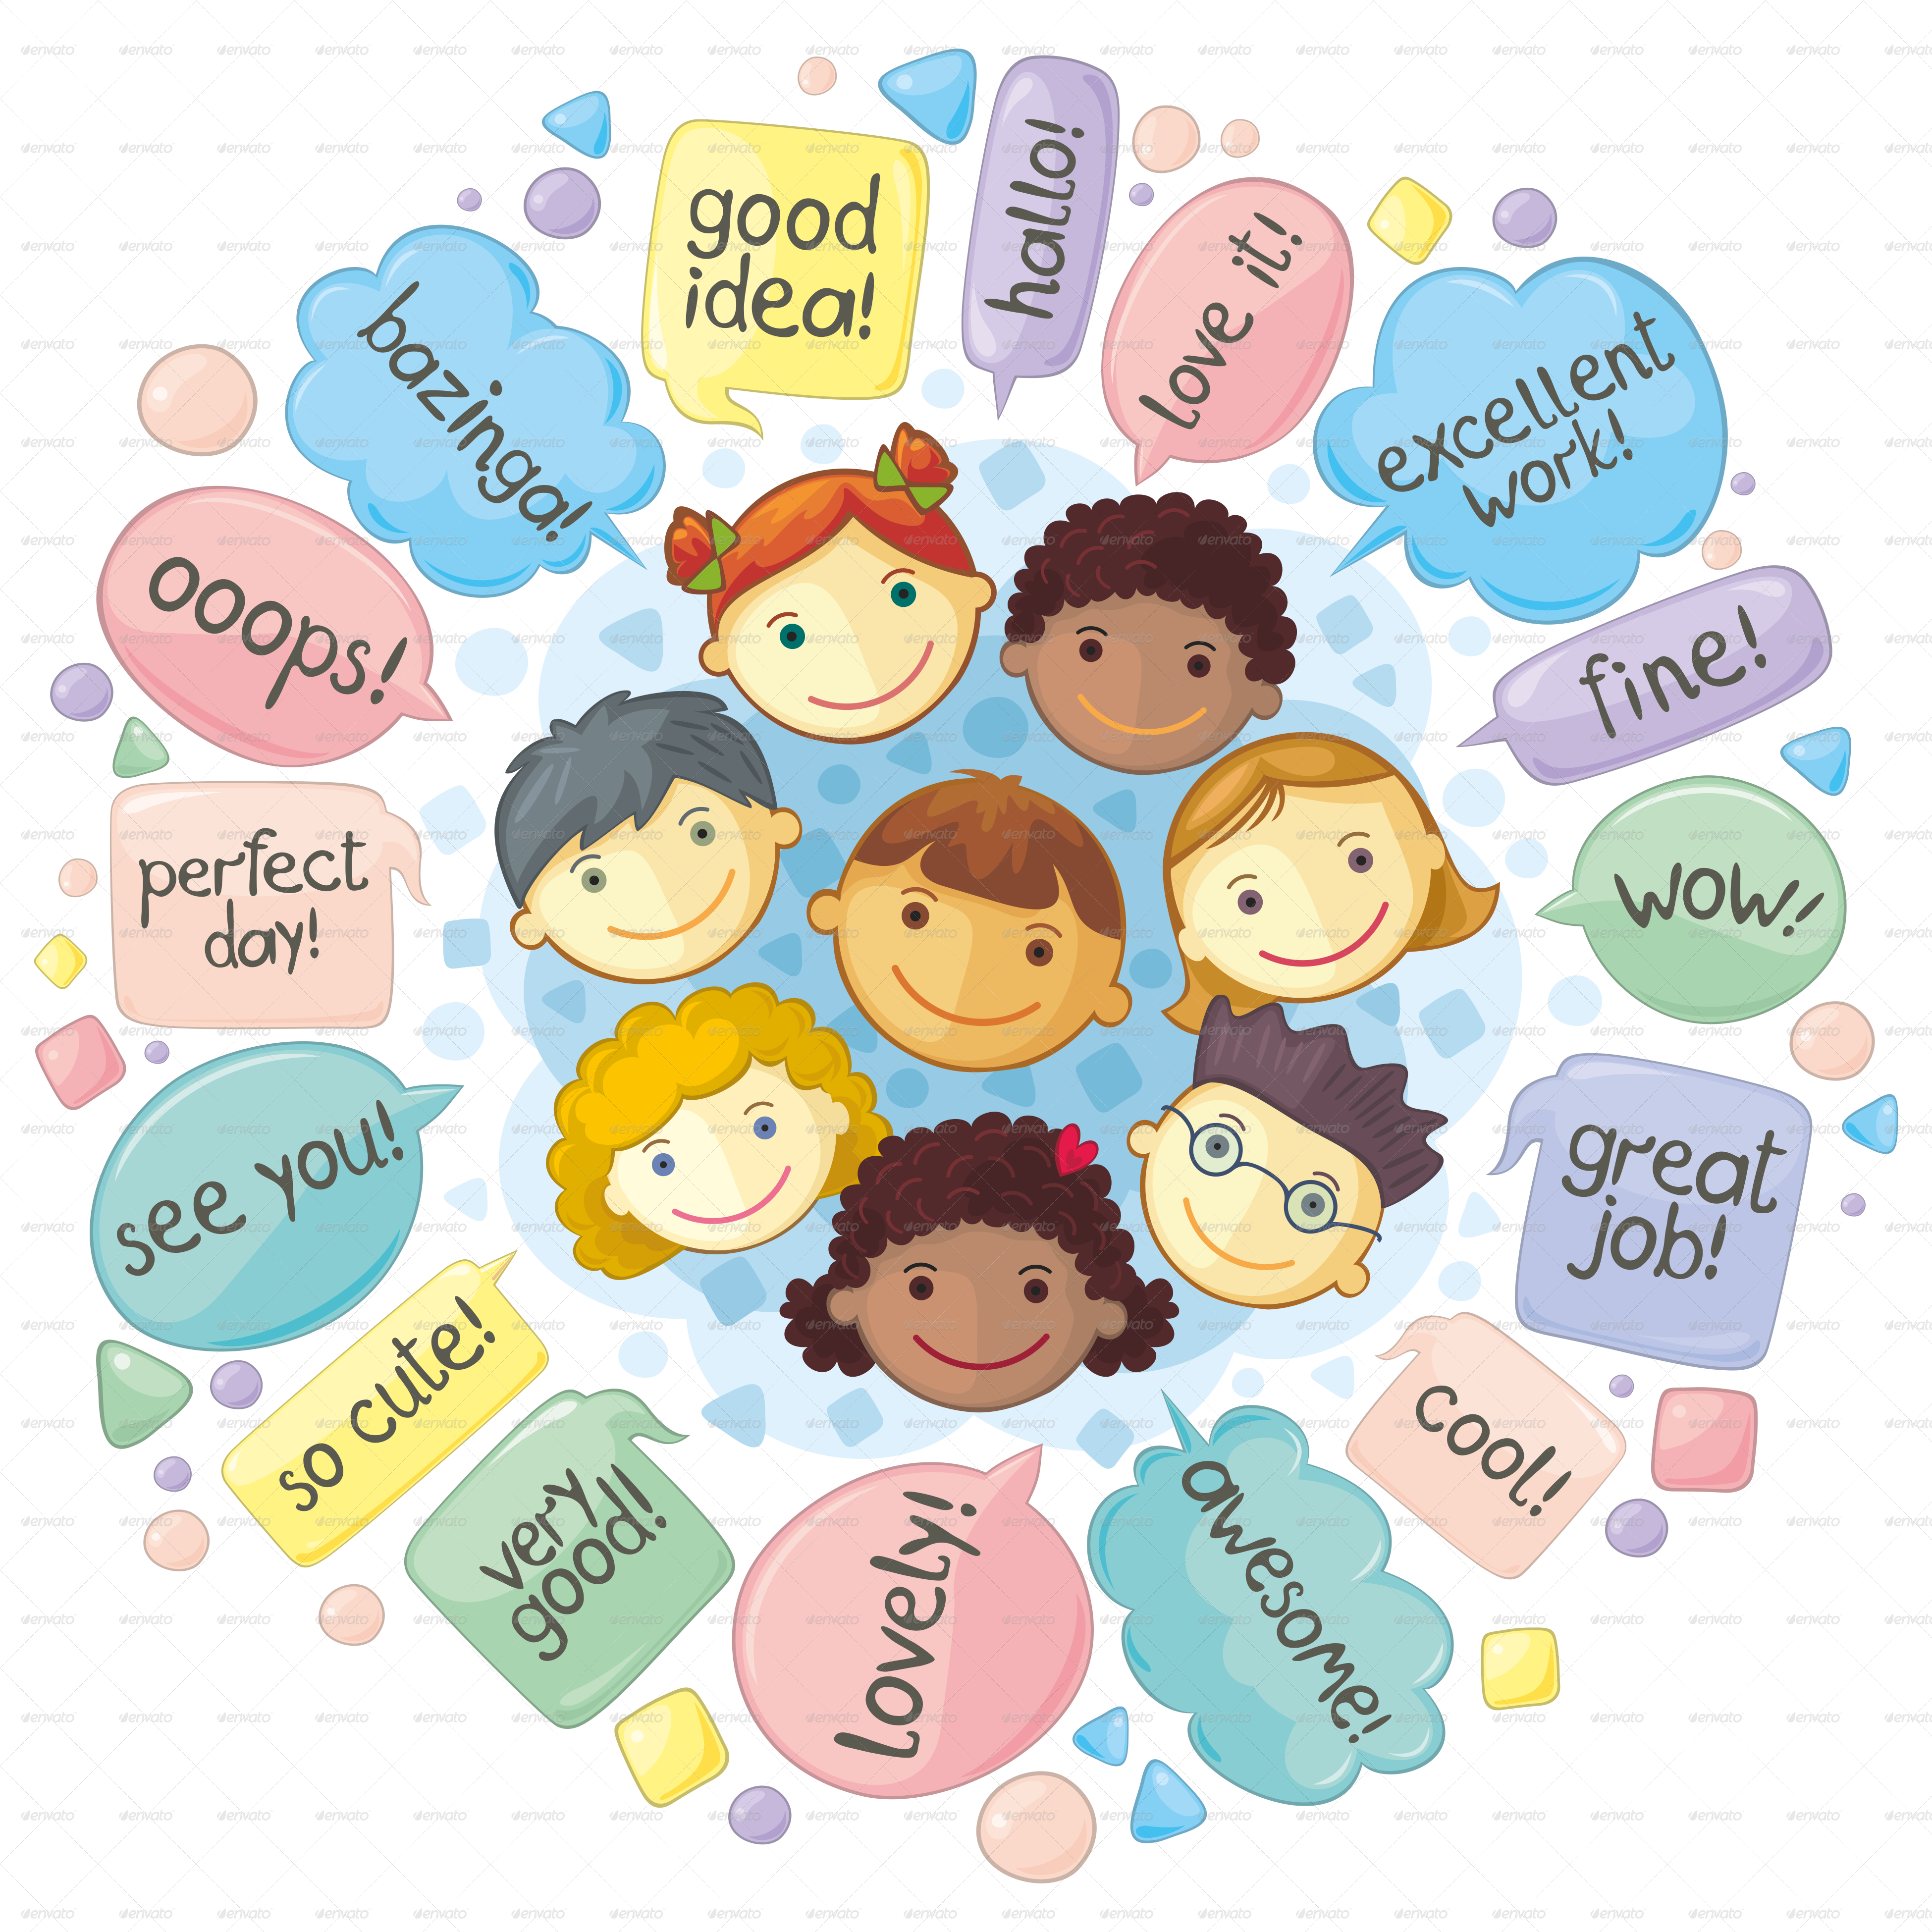 E clipart communication. Cute personages gathering for